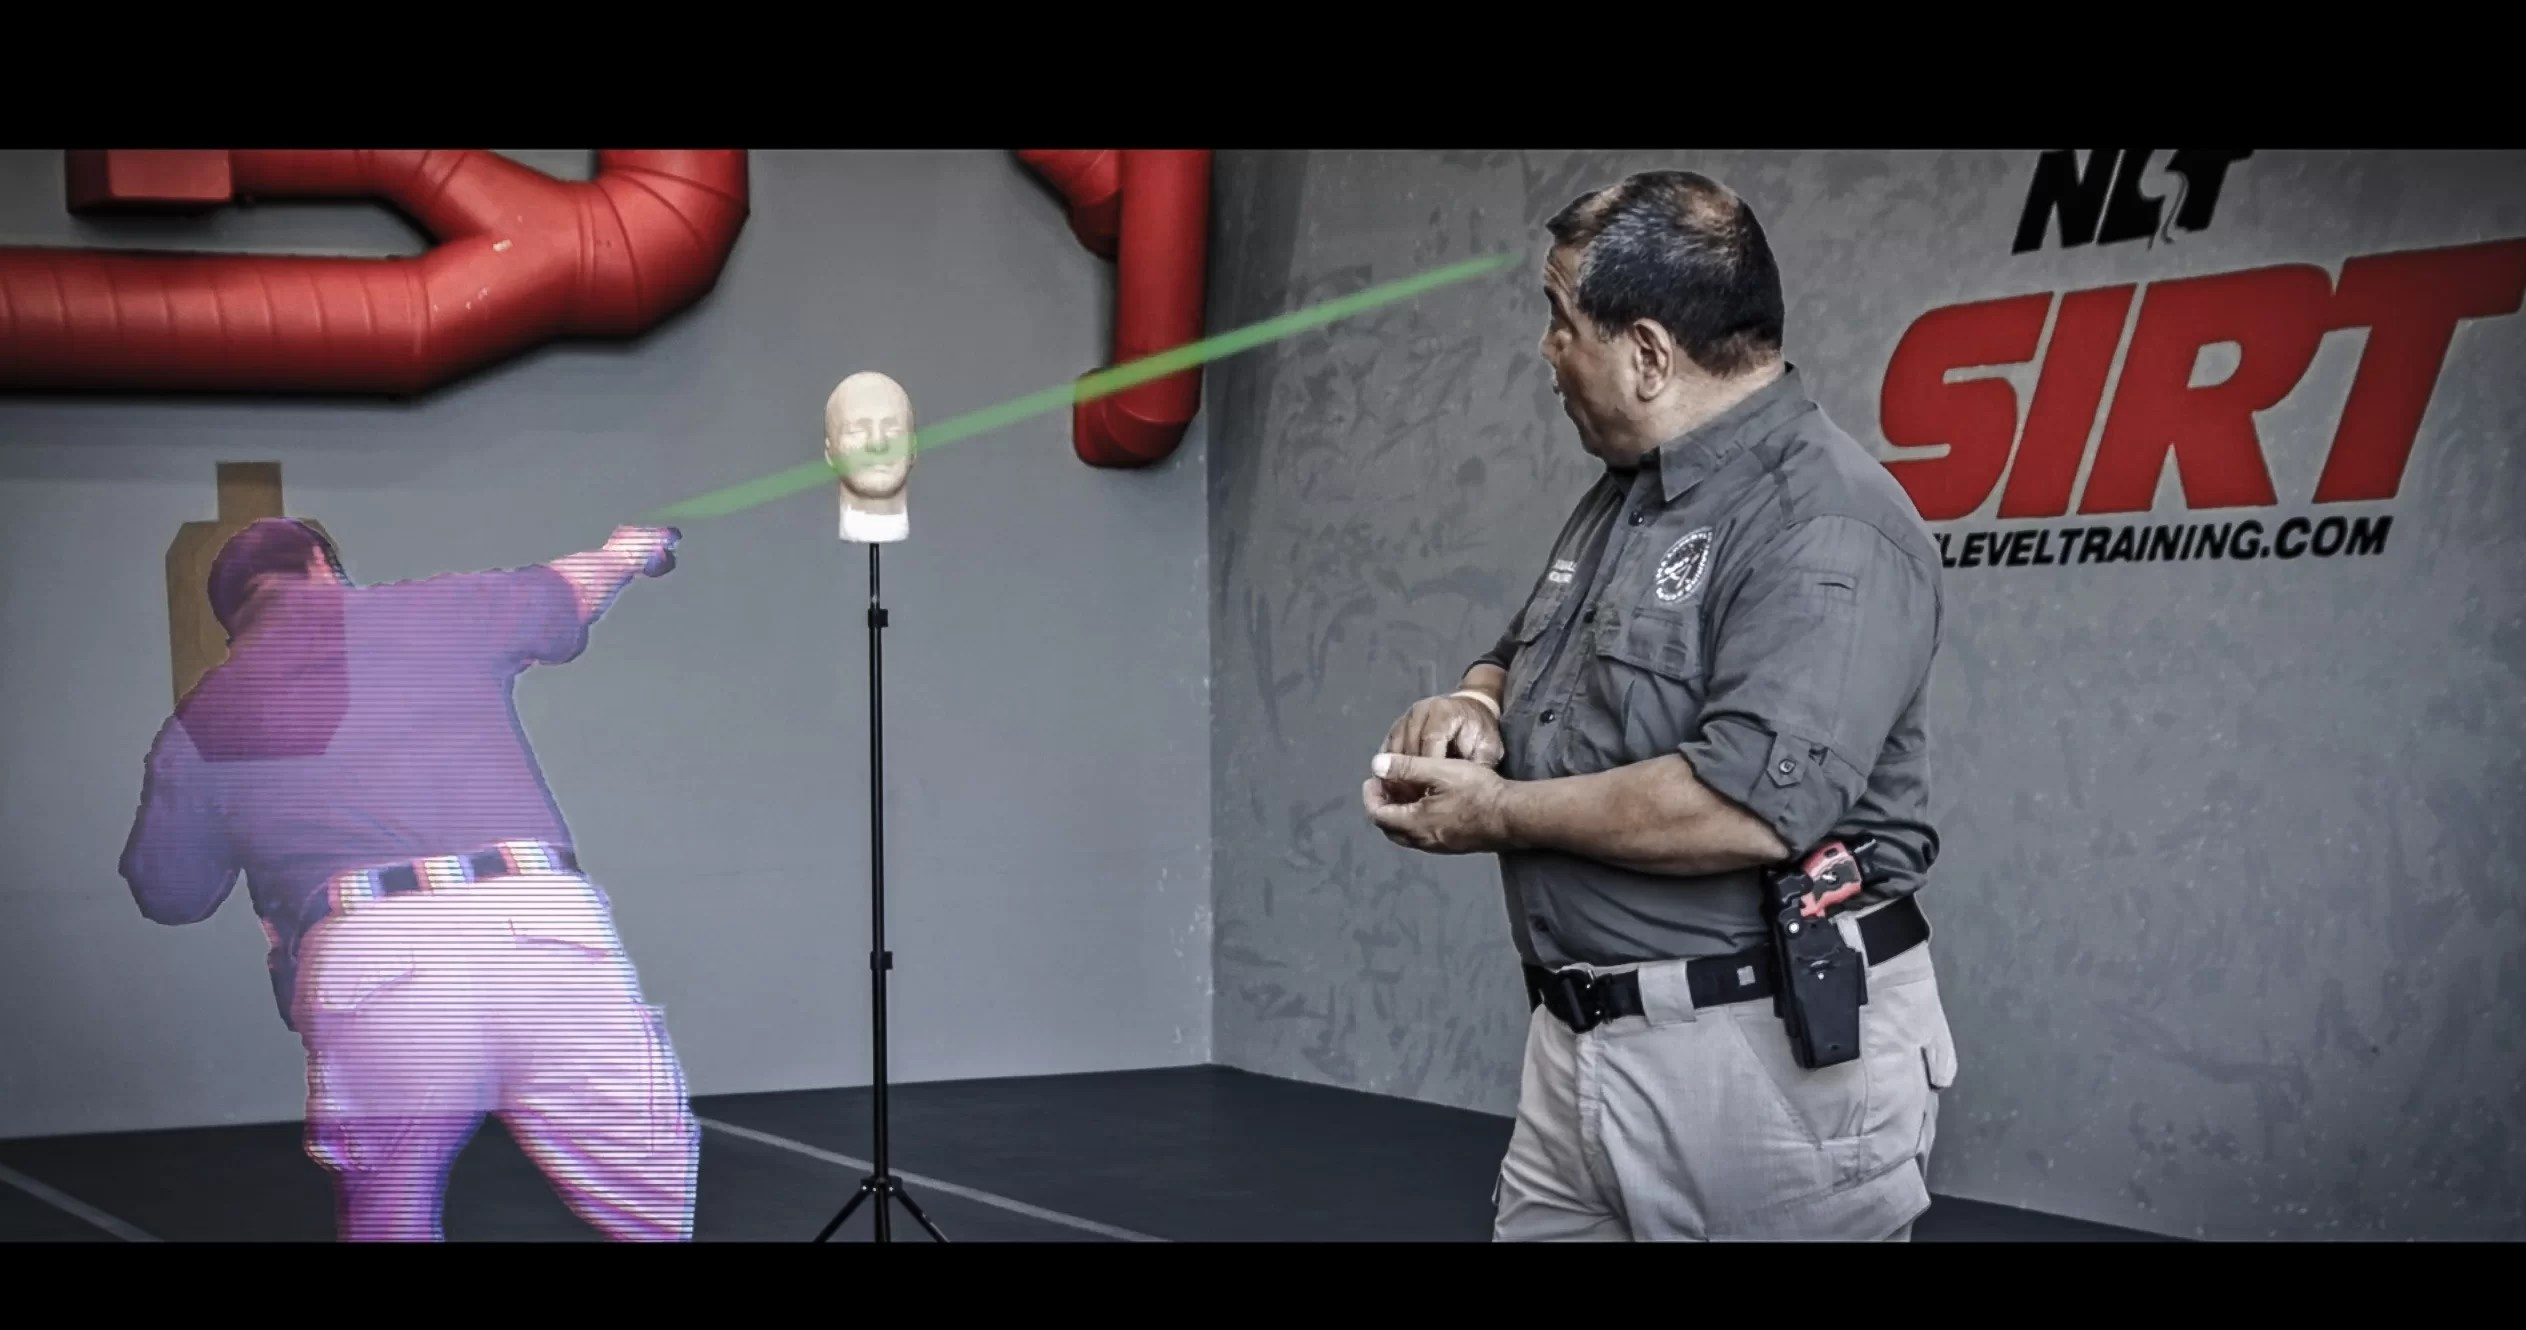 Mitigating liability when shooting a lethal threat. Showing upward trajectory of bullet